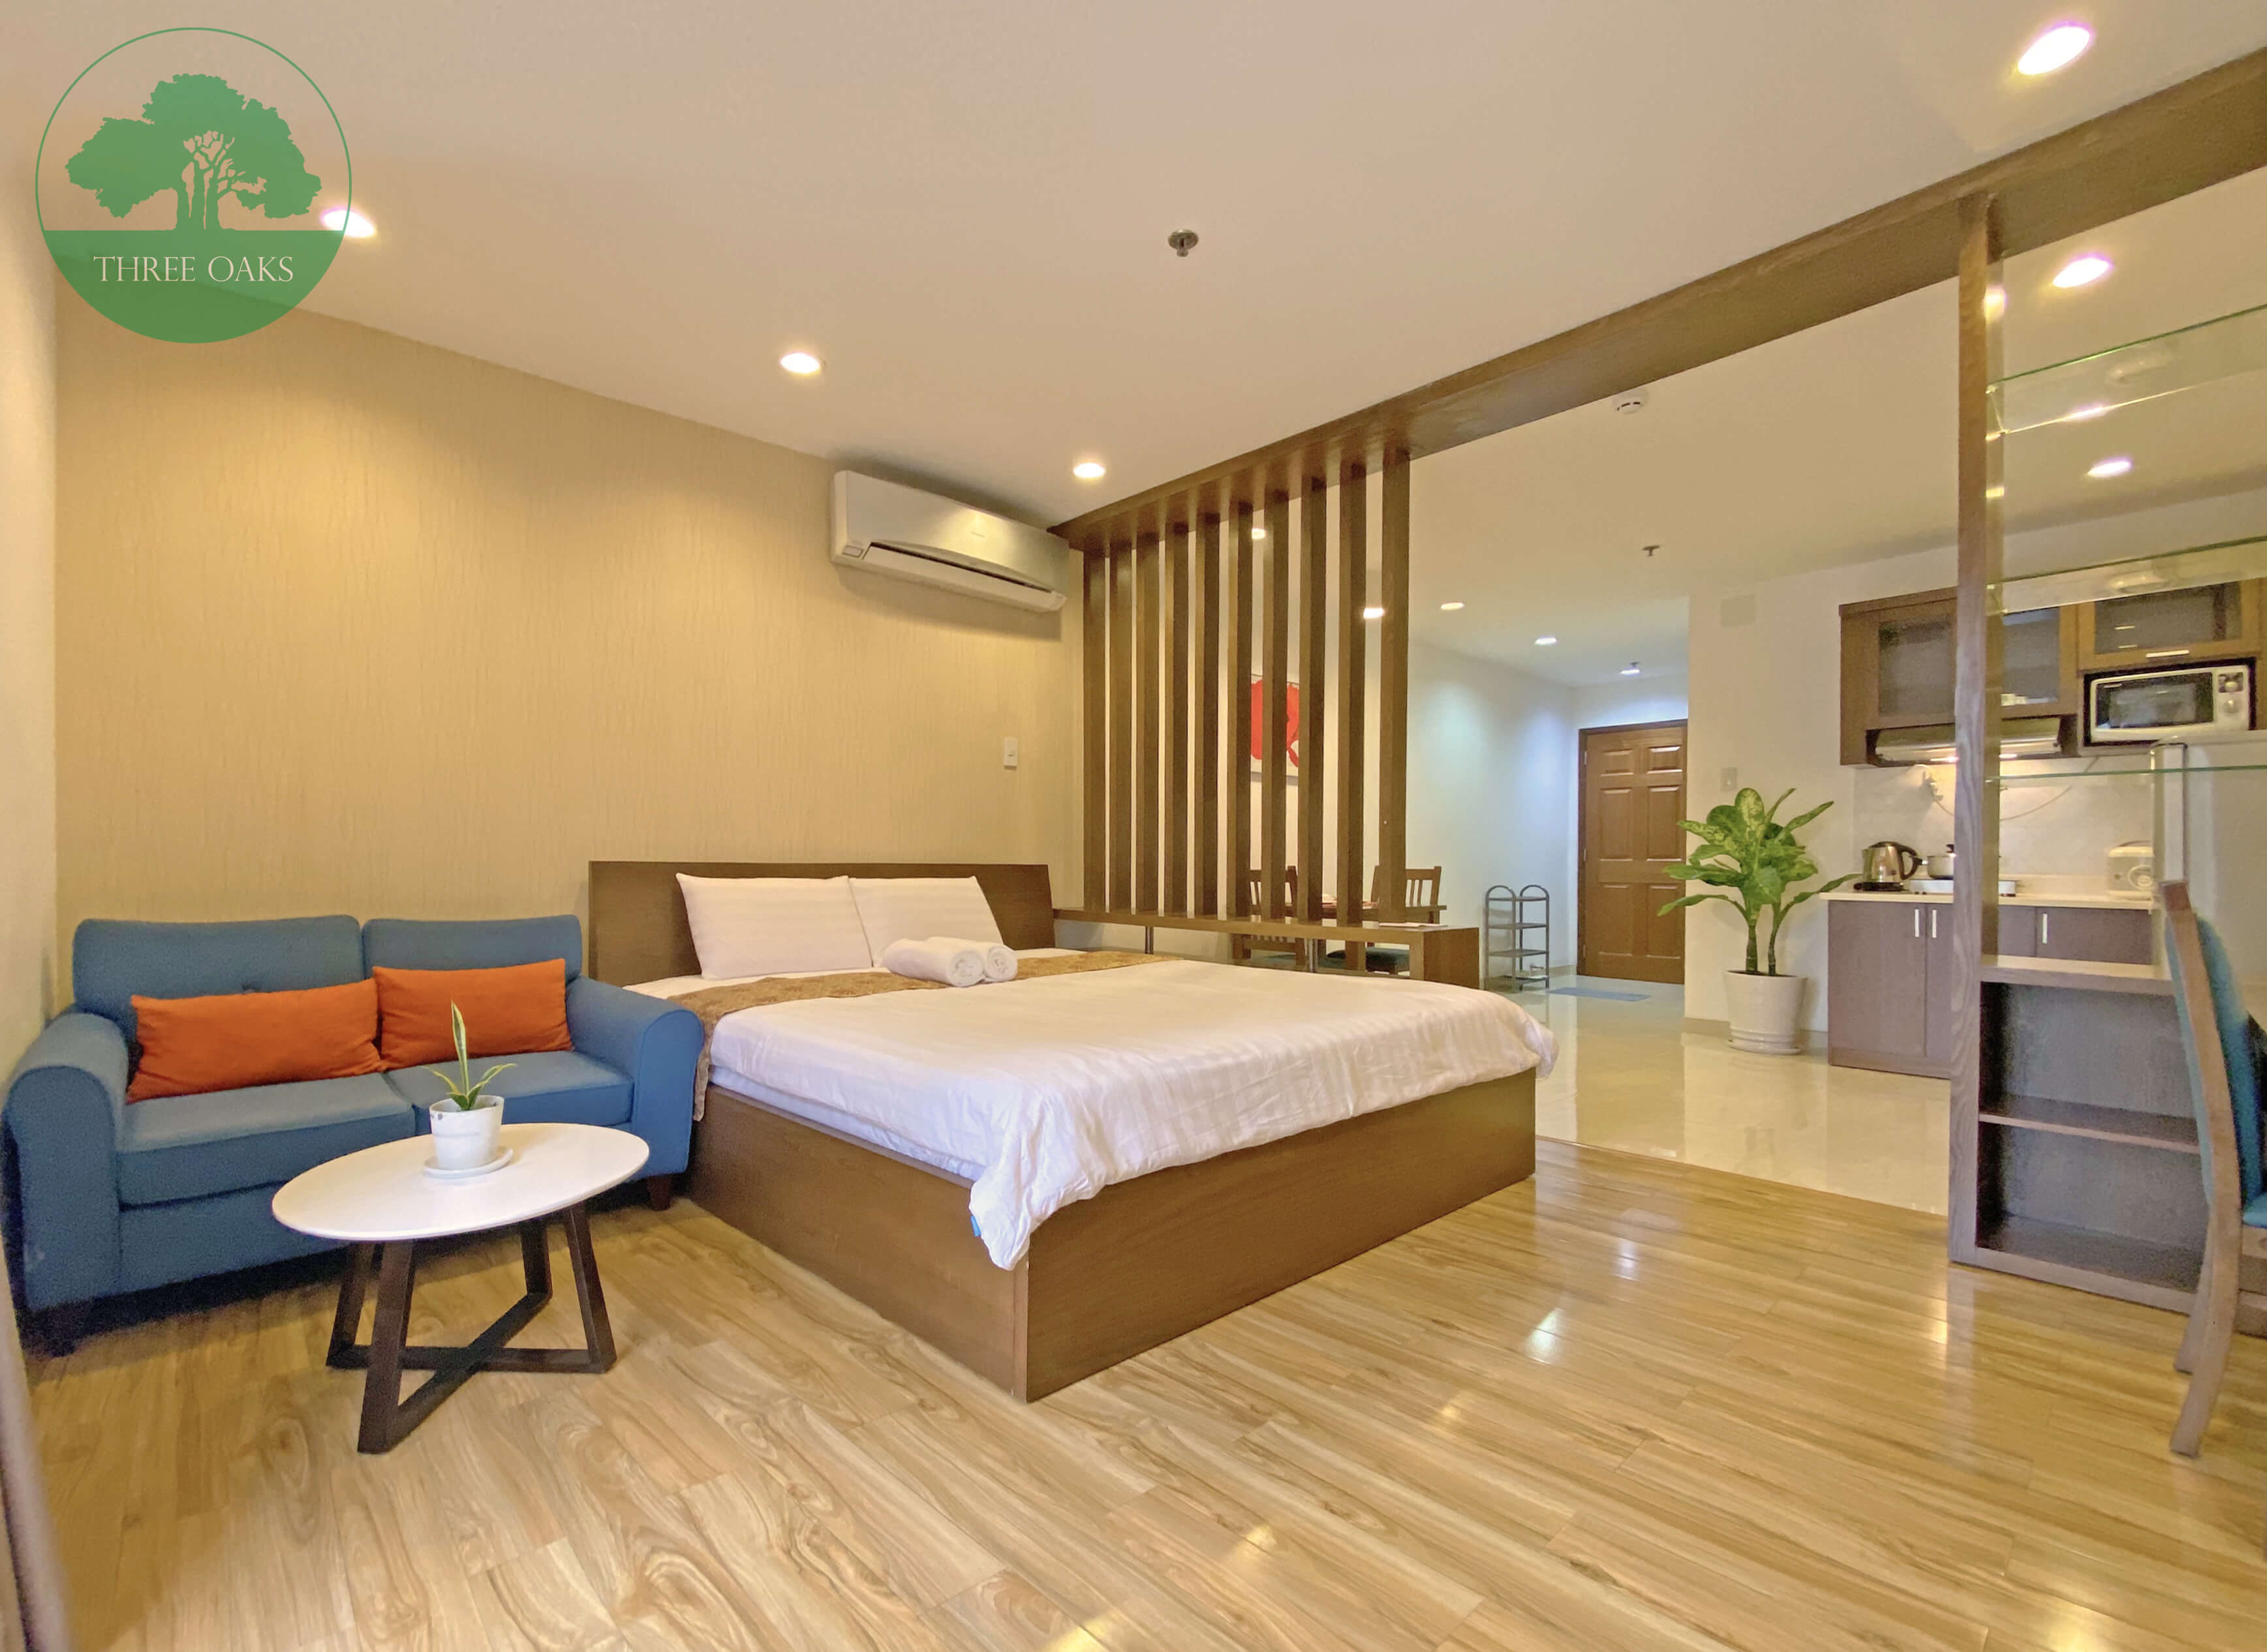 three-oaks-1-serviced-apartments-in-ho-chi-minh-city-in vietnam-8